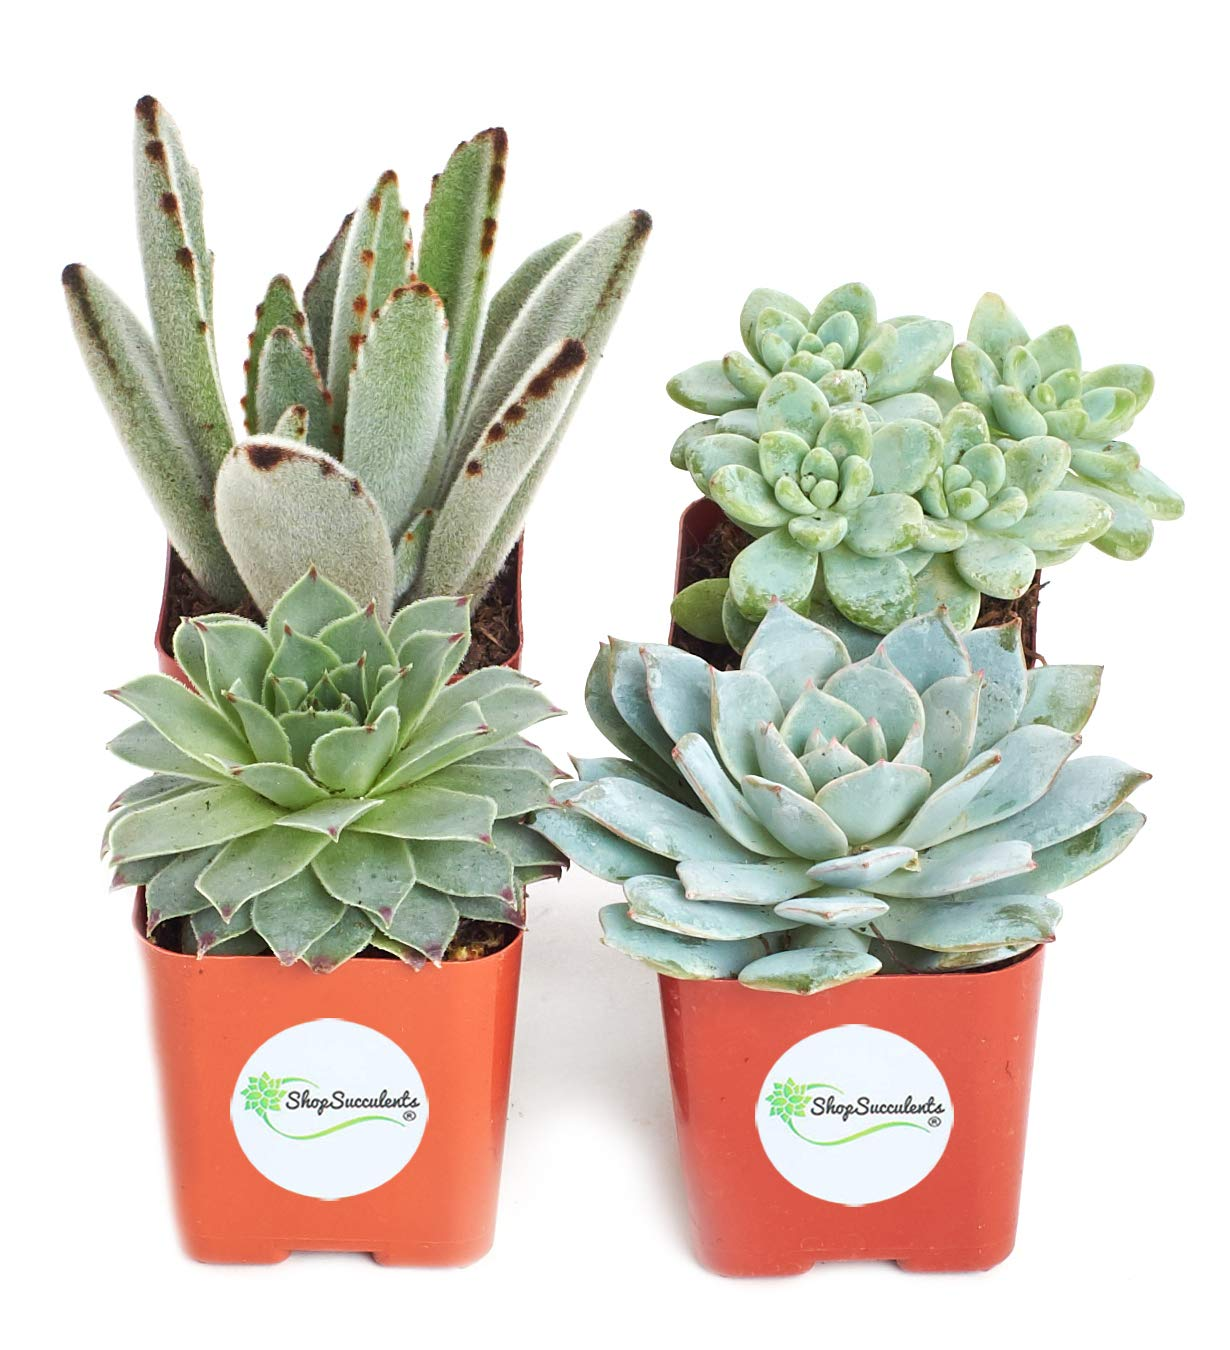 Shop Succulents | Blue/Green Live Plants, Hand Selected Variety Pack of Succulents | | Collection of 4 in 2'' pots, Pack of 4